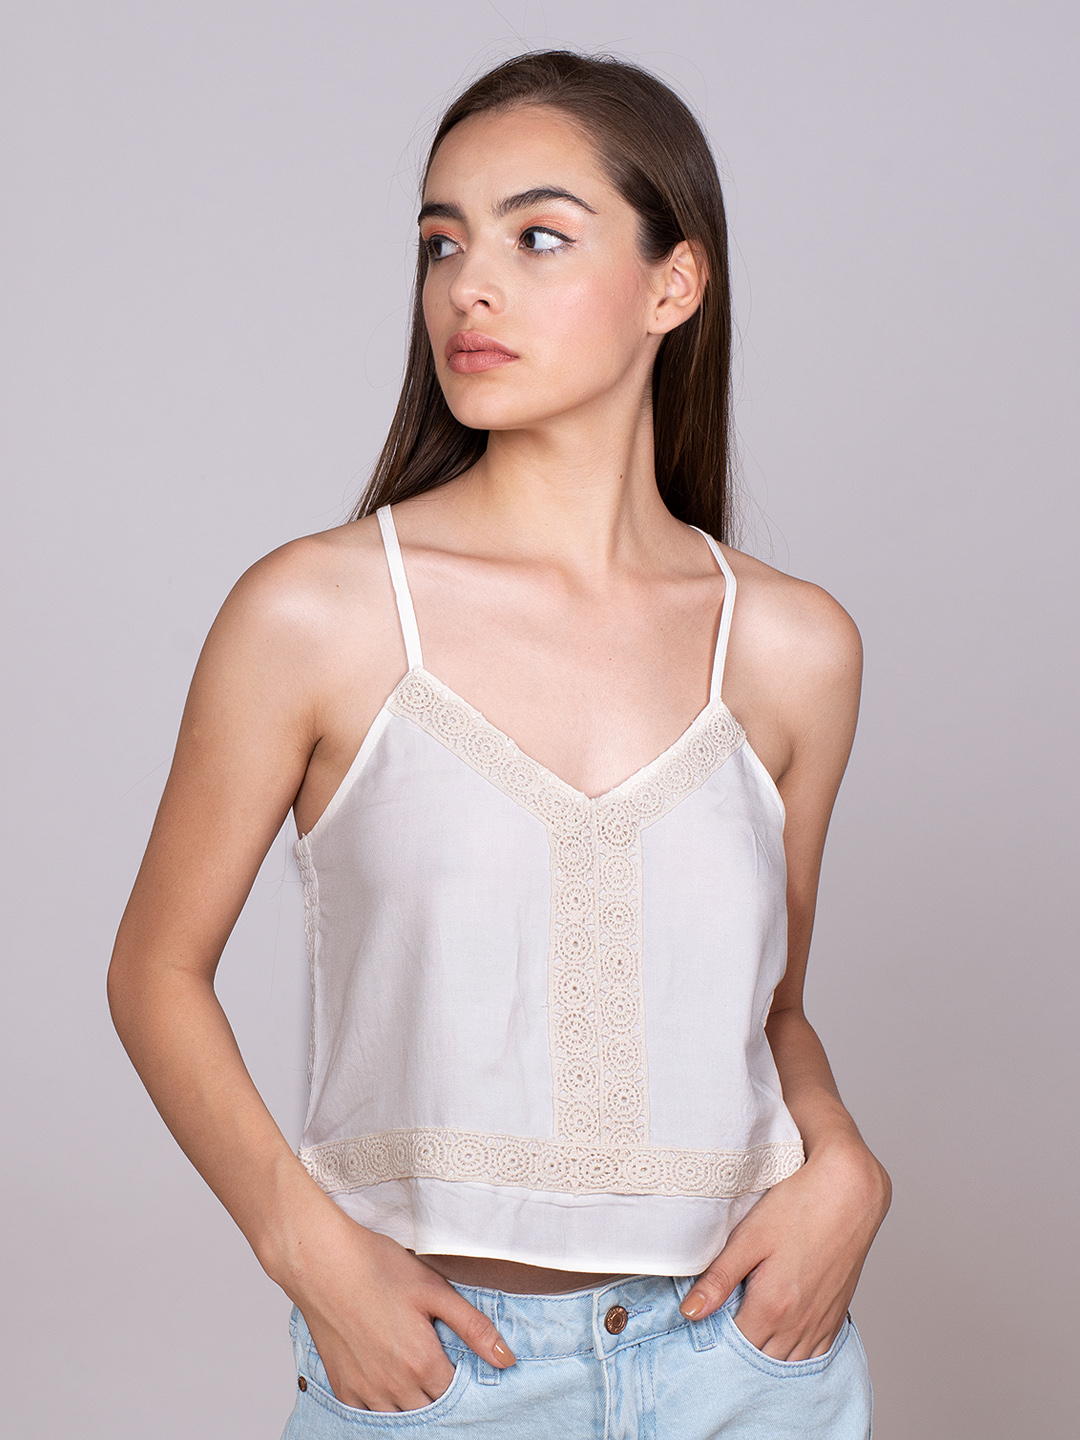 Lace patched white Strappy bralette